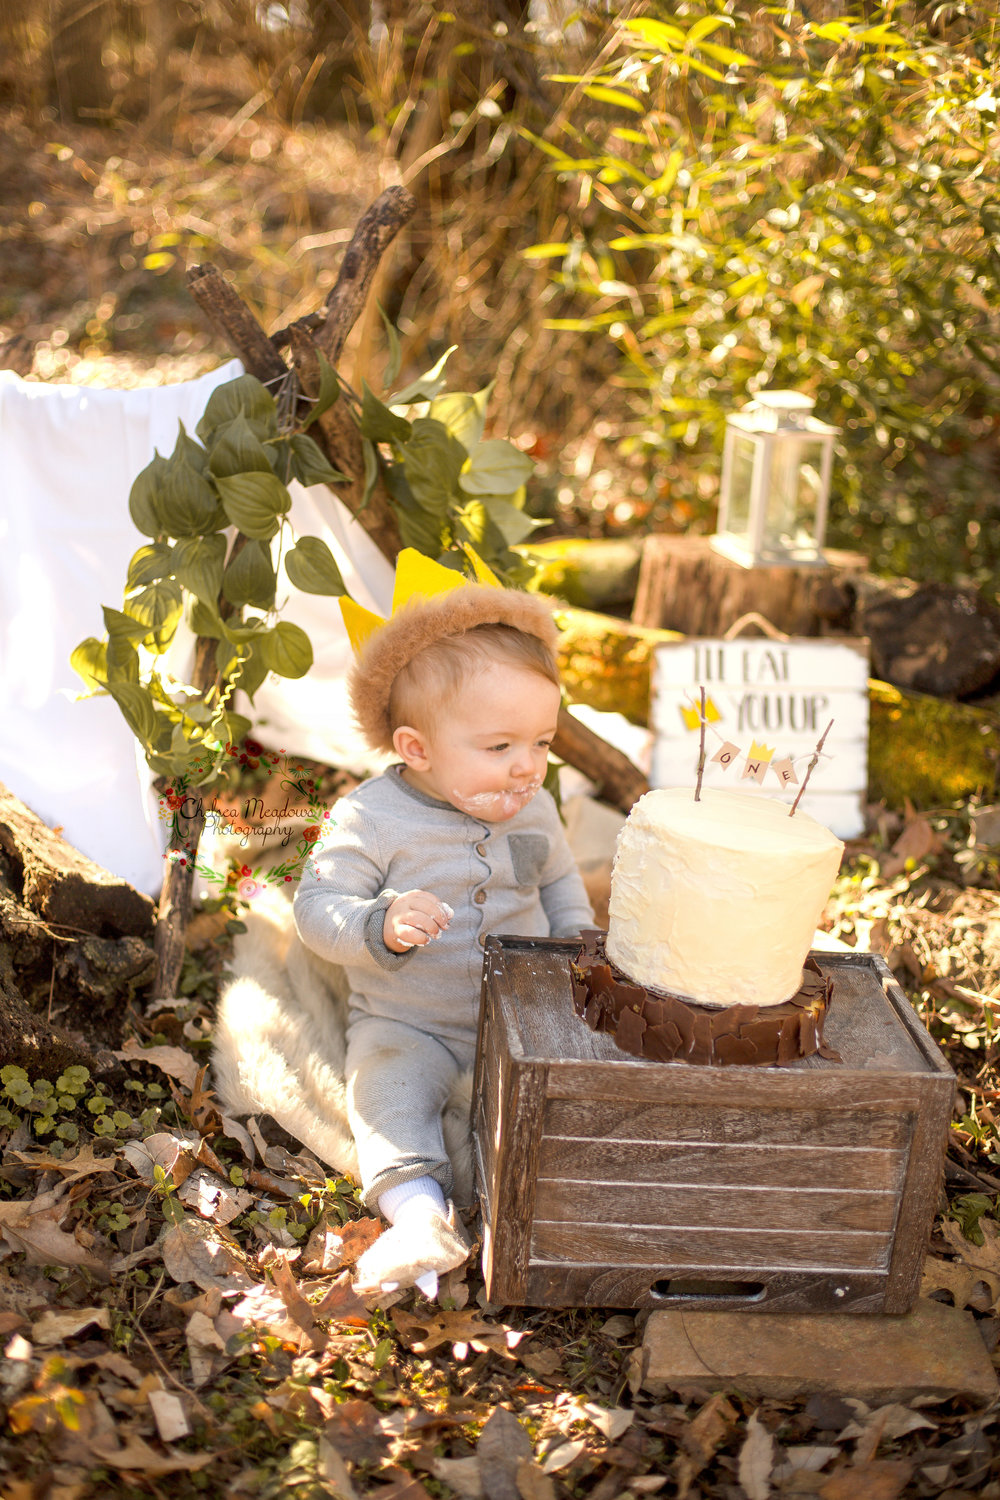 Matteo First Birthday Cake Smash - Nashville Family Photographer - Chelsea Meadows Photography (83).jpg